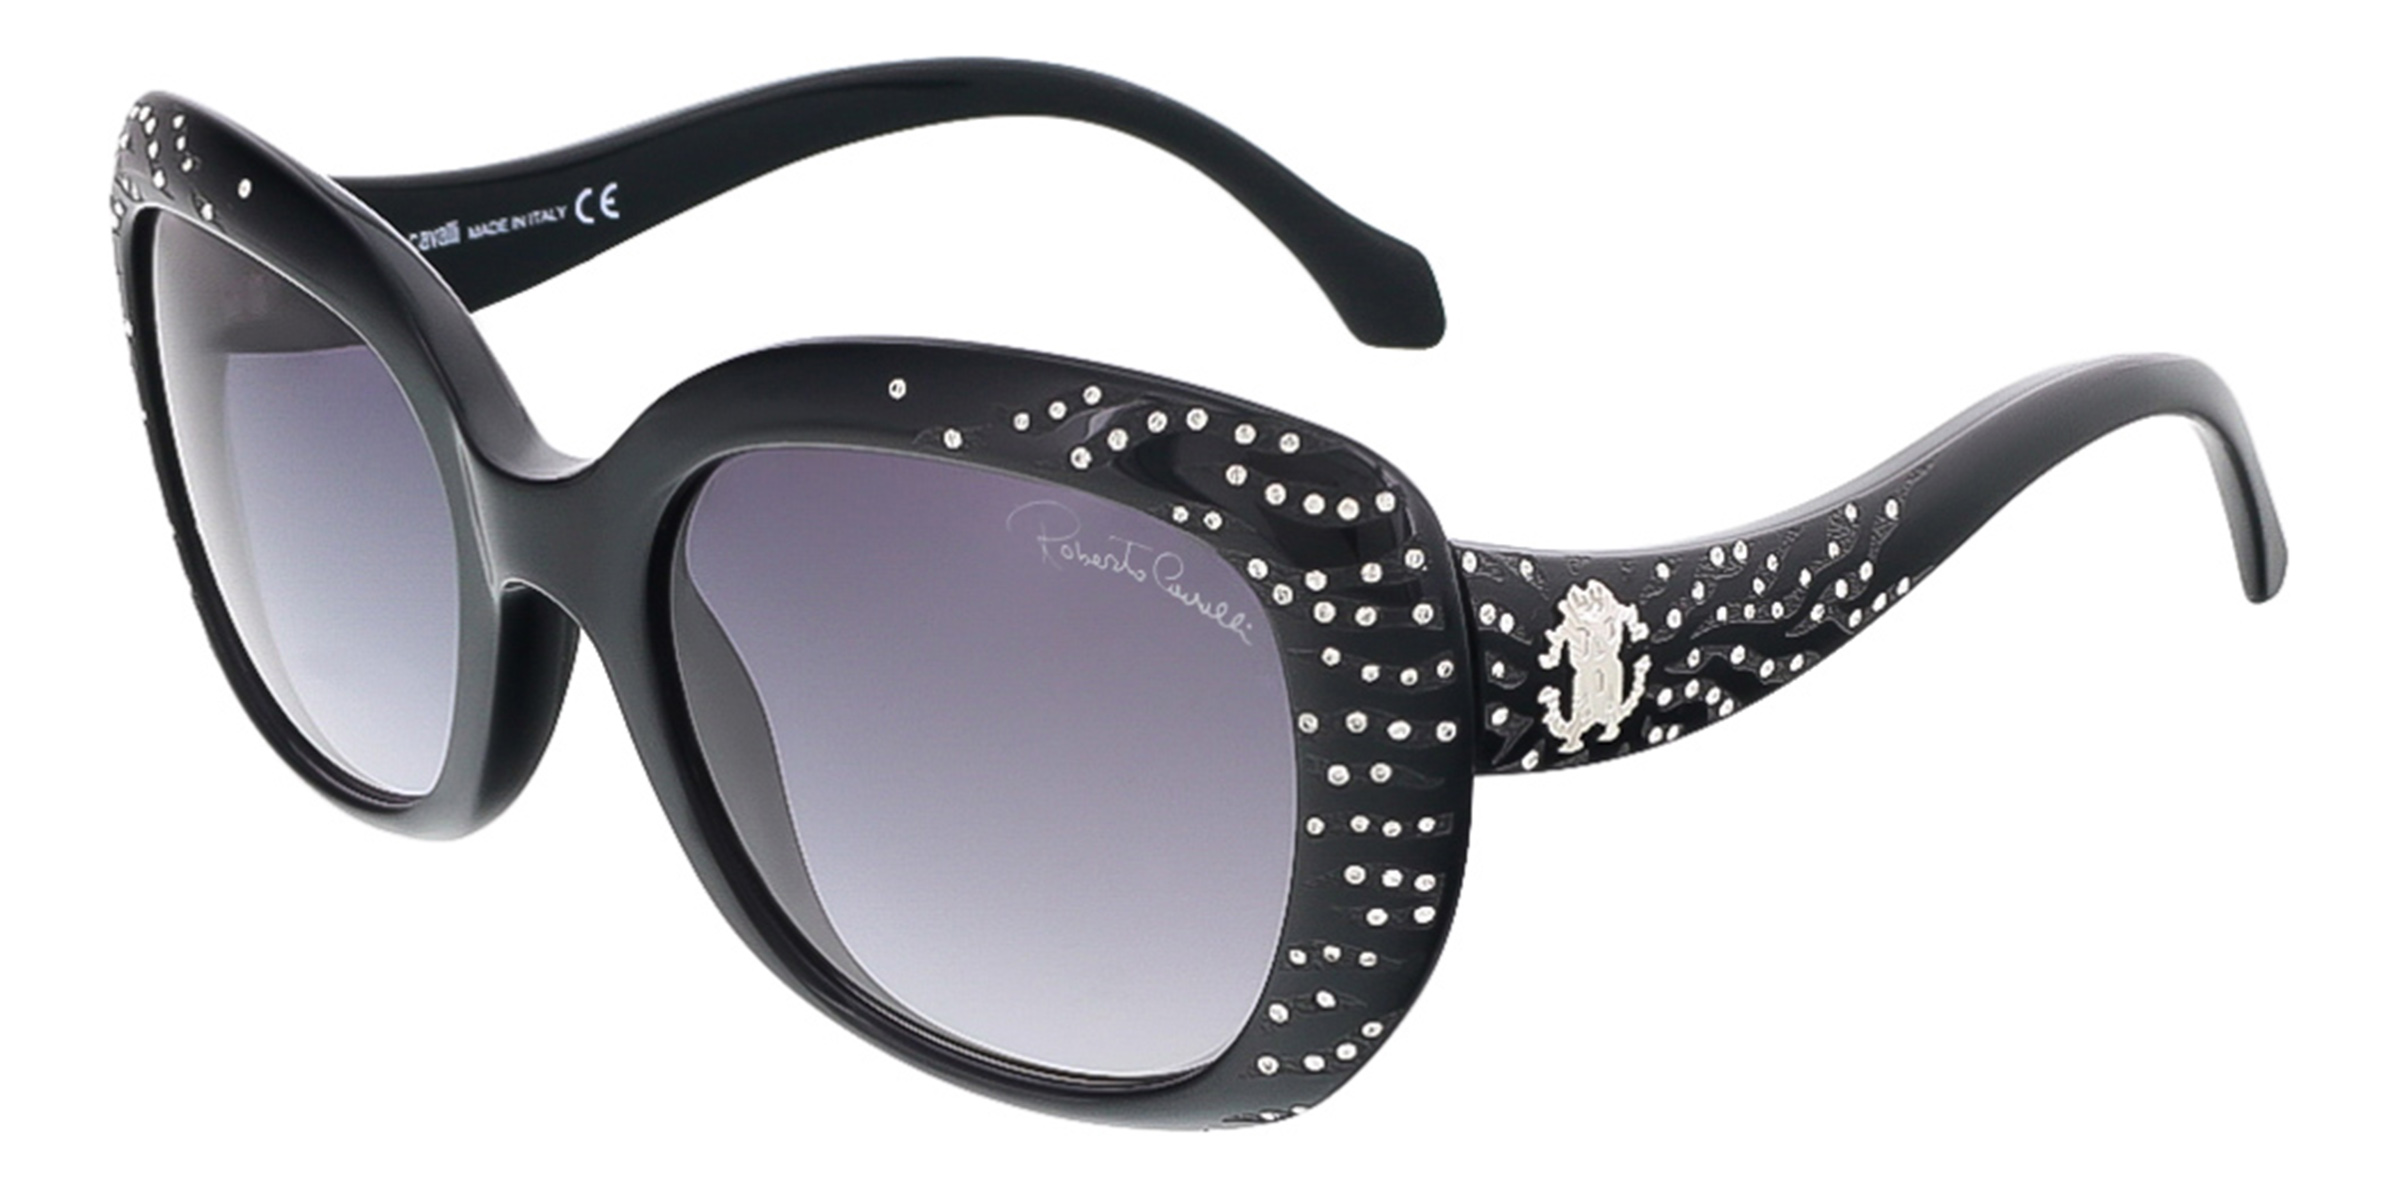 Roberto Cavalli RC827S/S 01B ALTAIR  Shiny Black Butterfly sunglasses